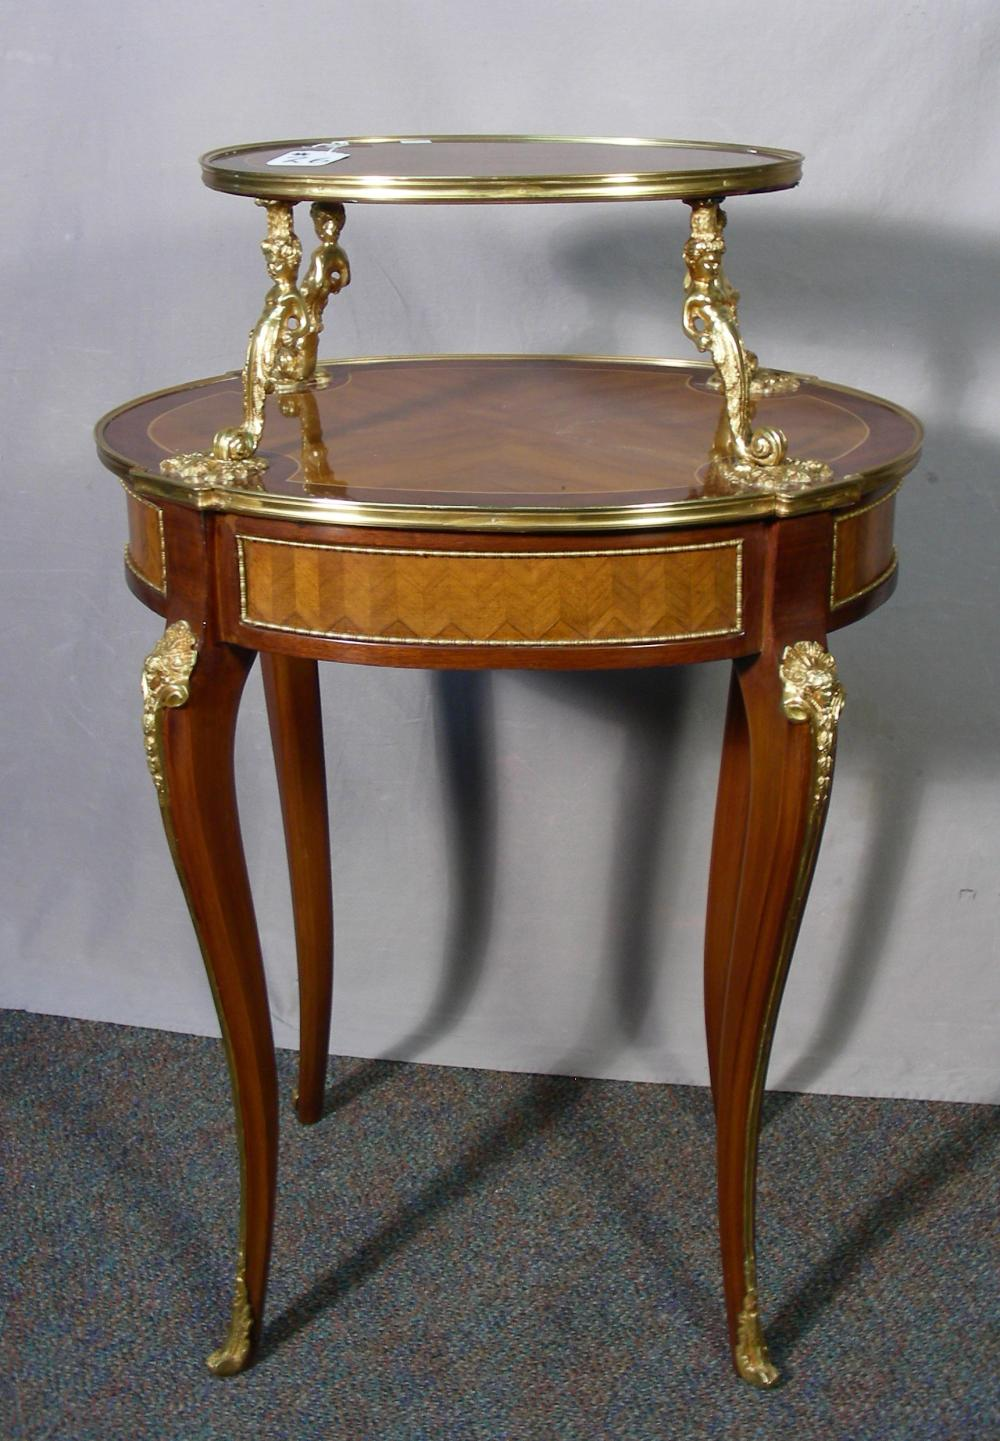 FRENCH INLAID DOUBLE TIERED TABLE WITH ORMOLU DECORATIONS